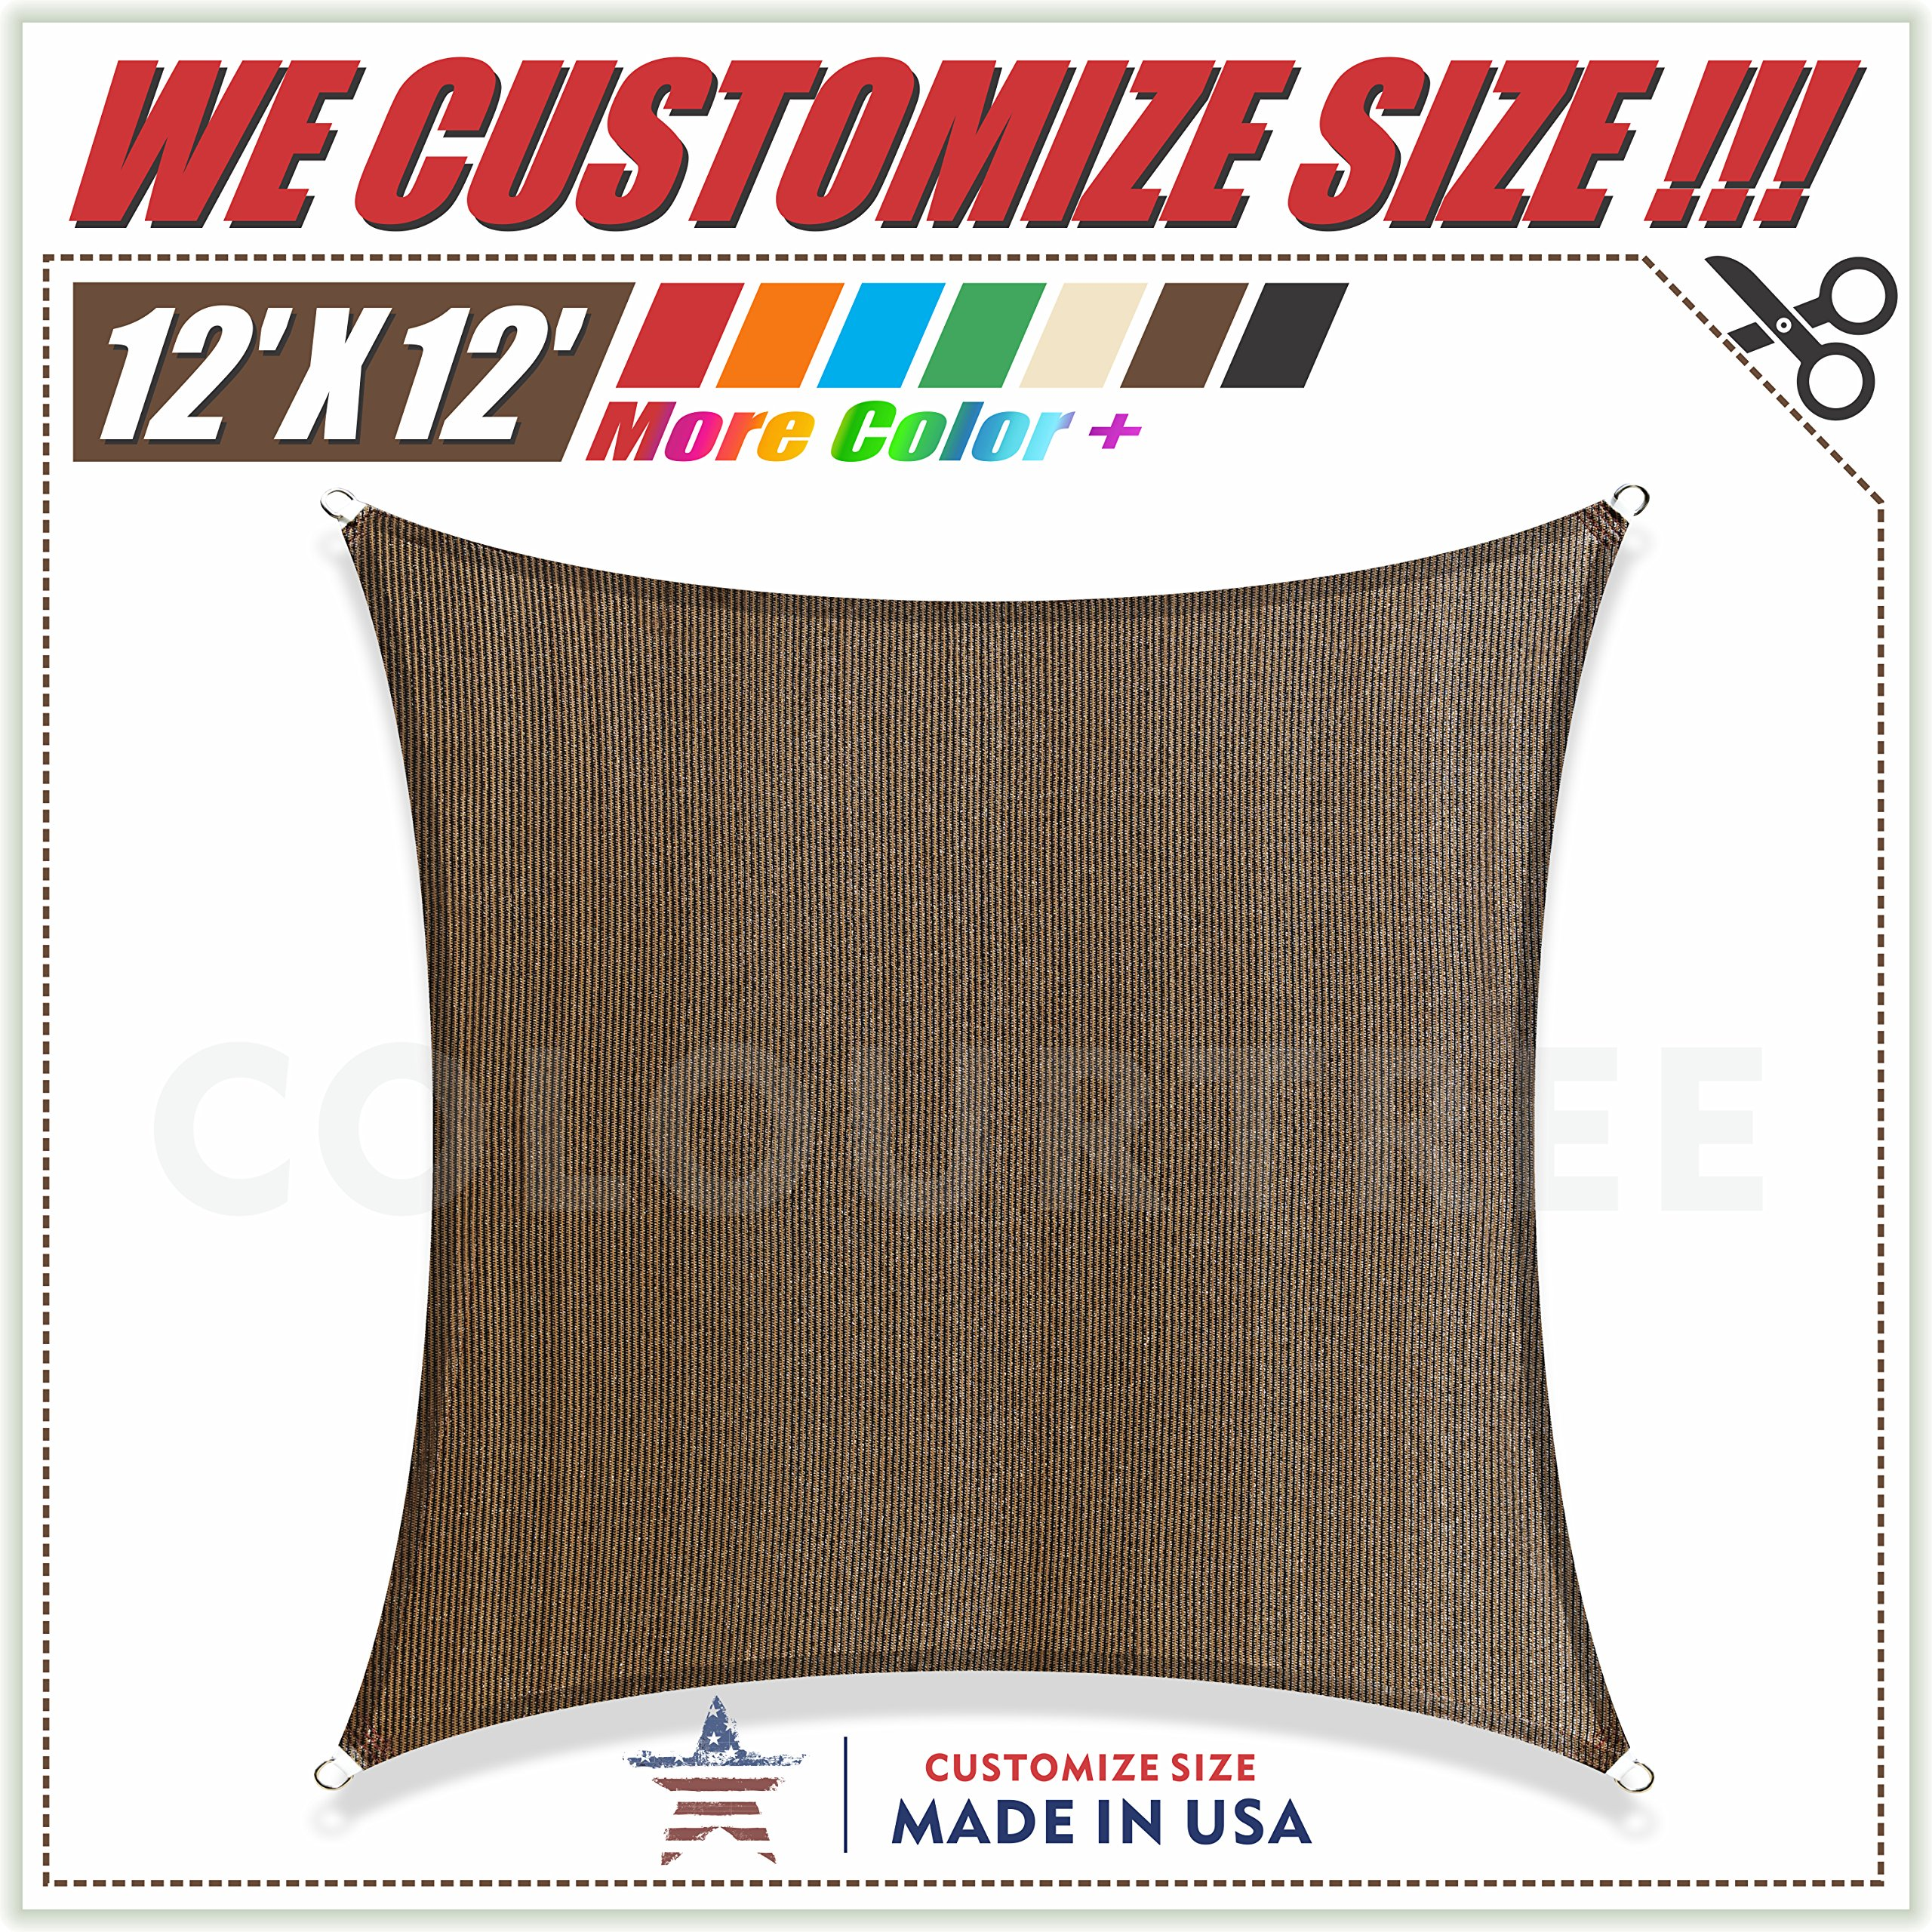 ColourTree 12'x12' Brown Sun Shade Sail Square Canopy We Customize x